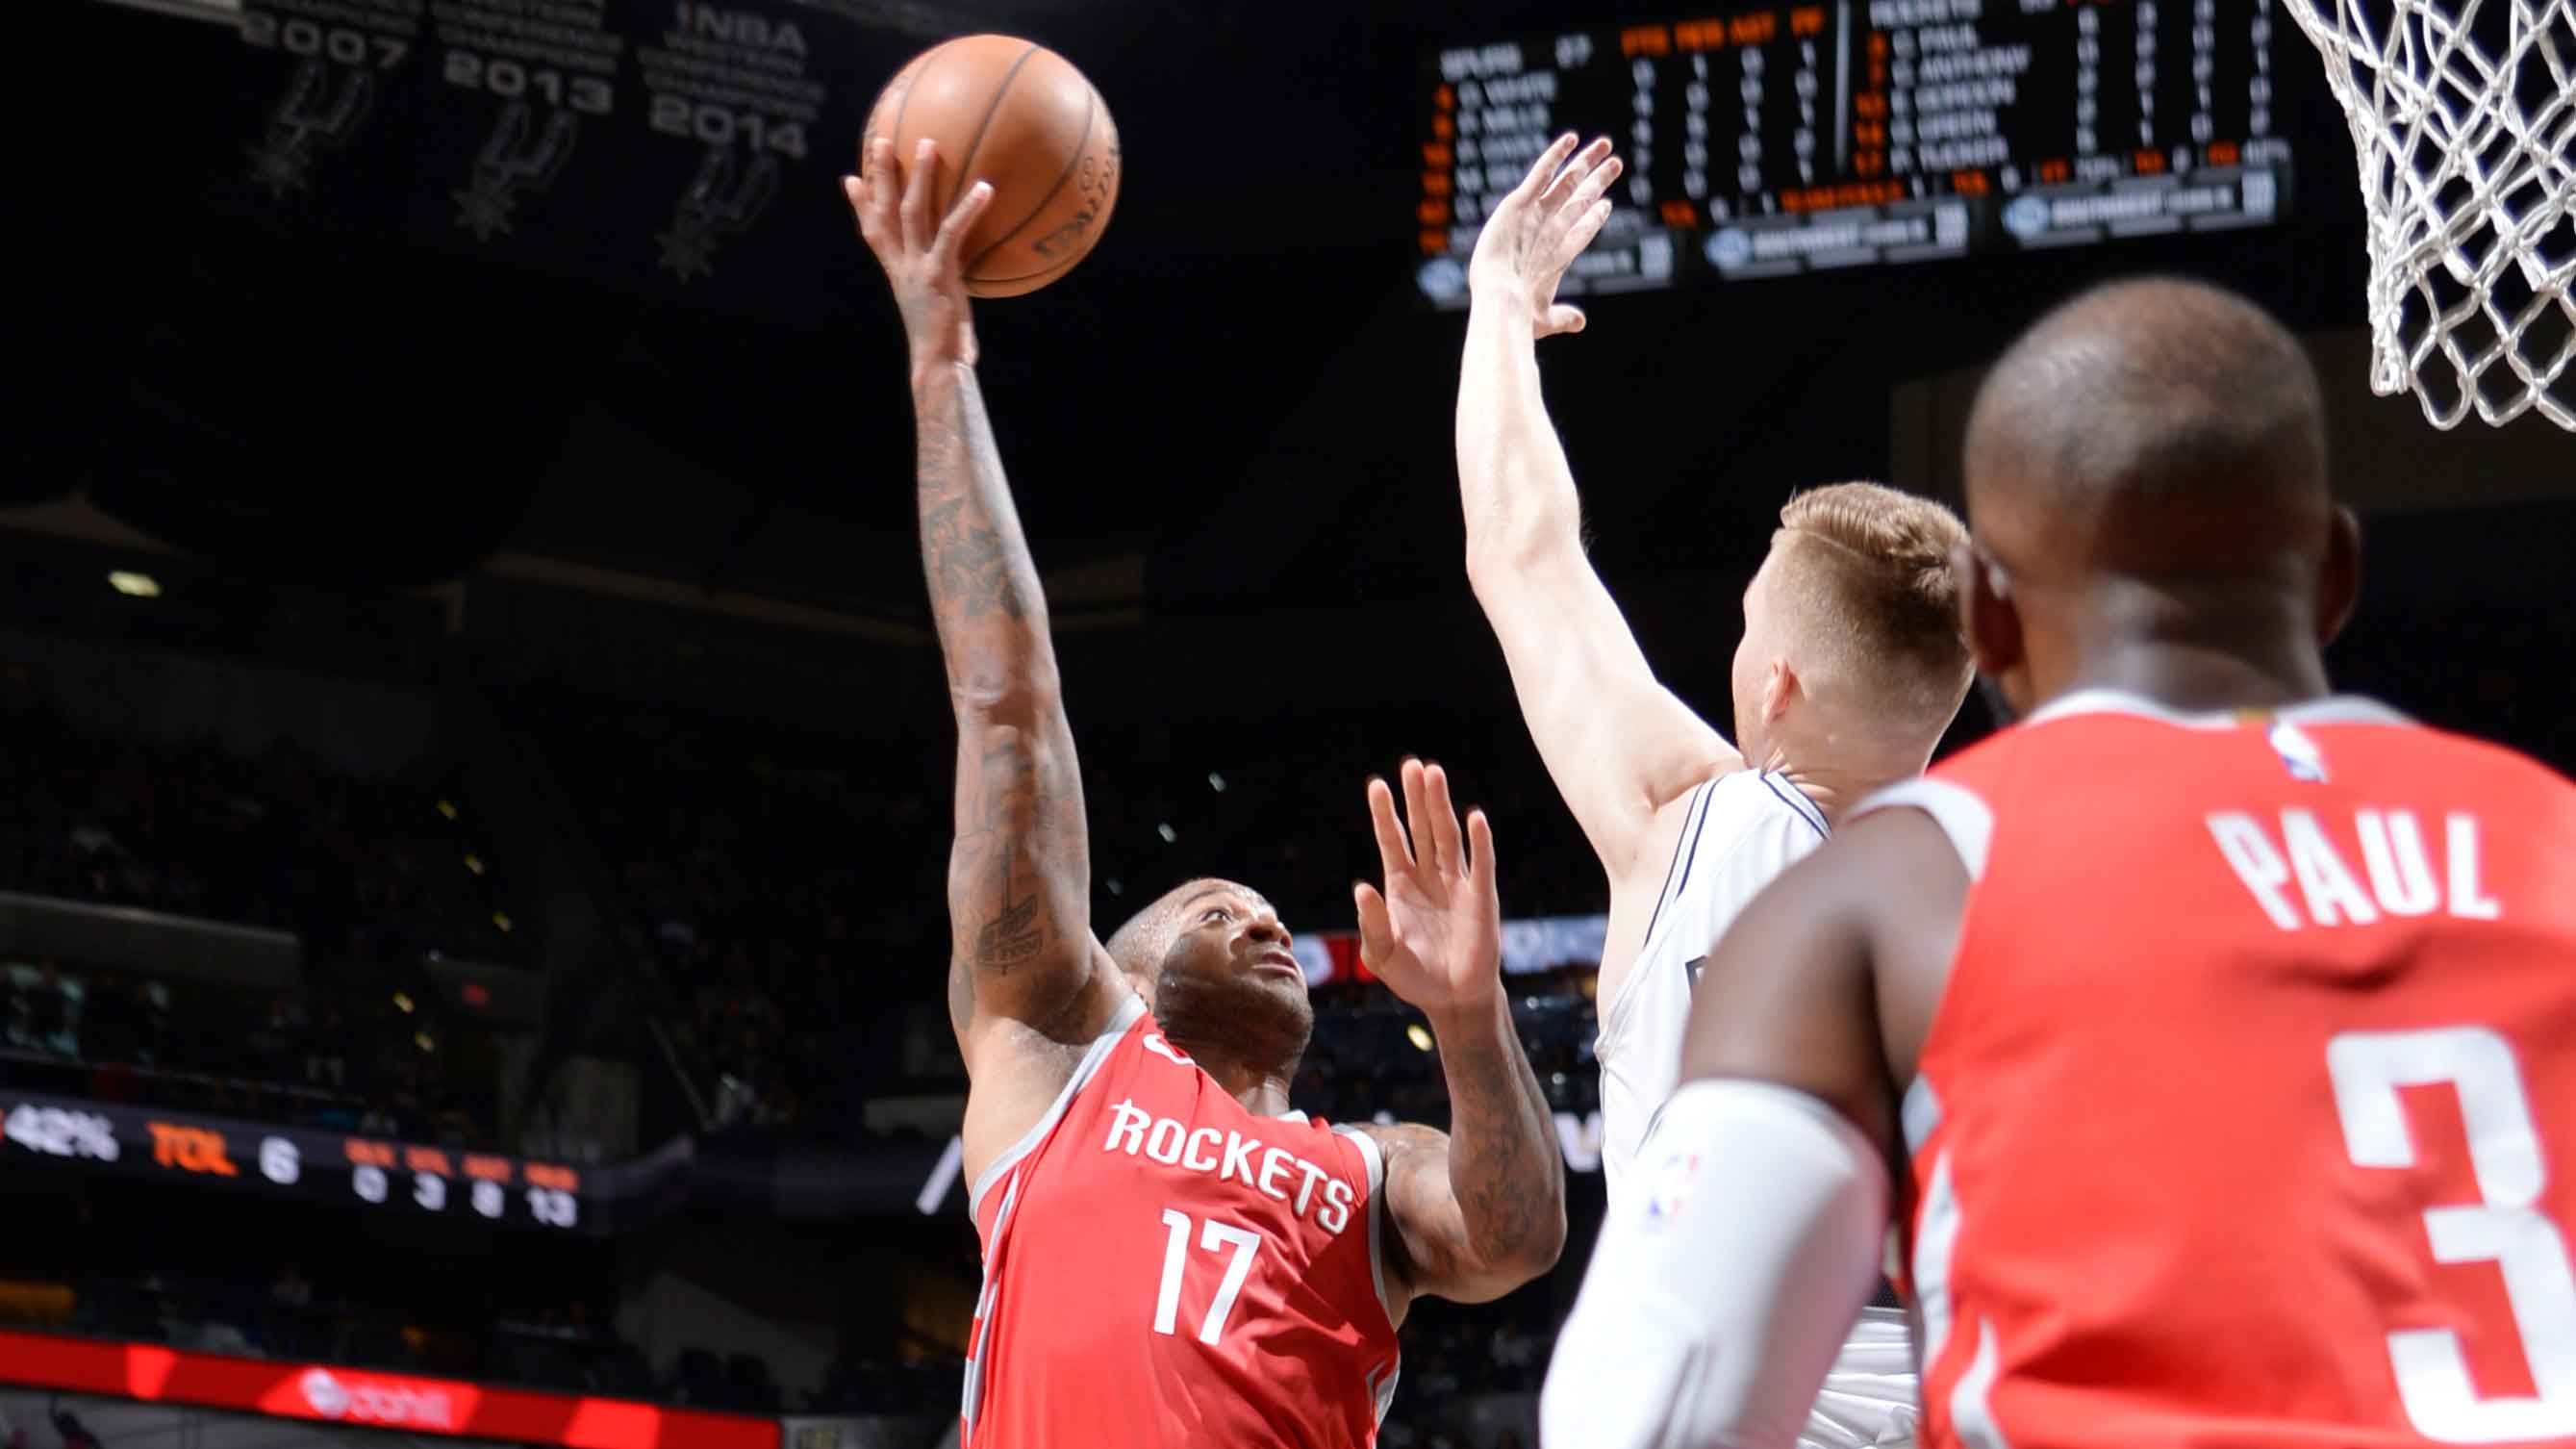 GAME RECAP: Rockets 108, Spurs 93